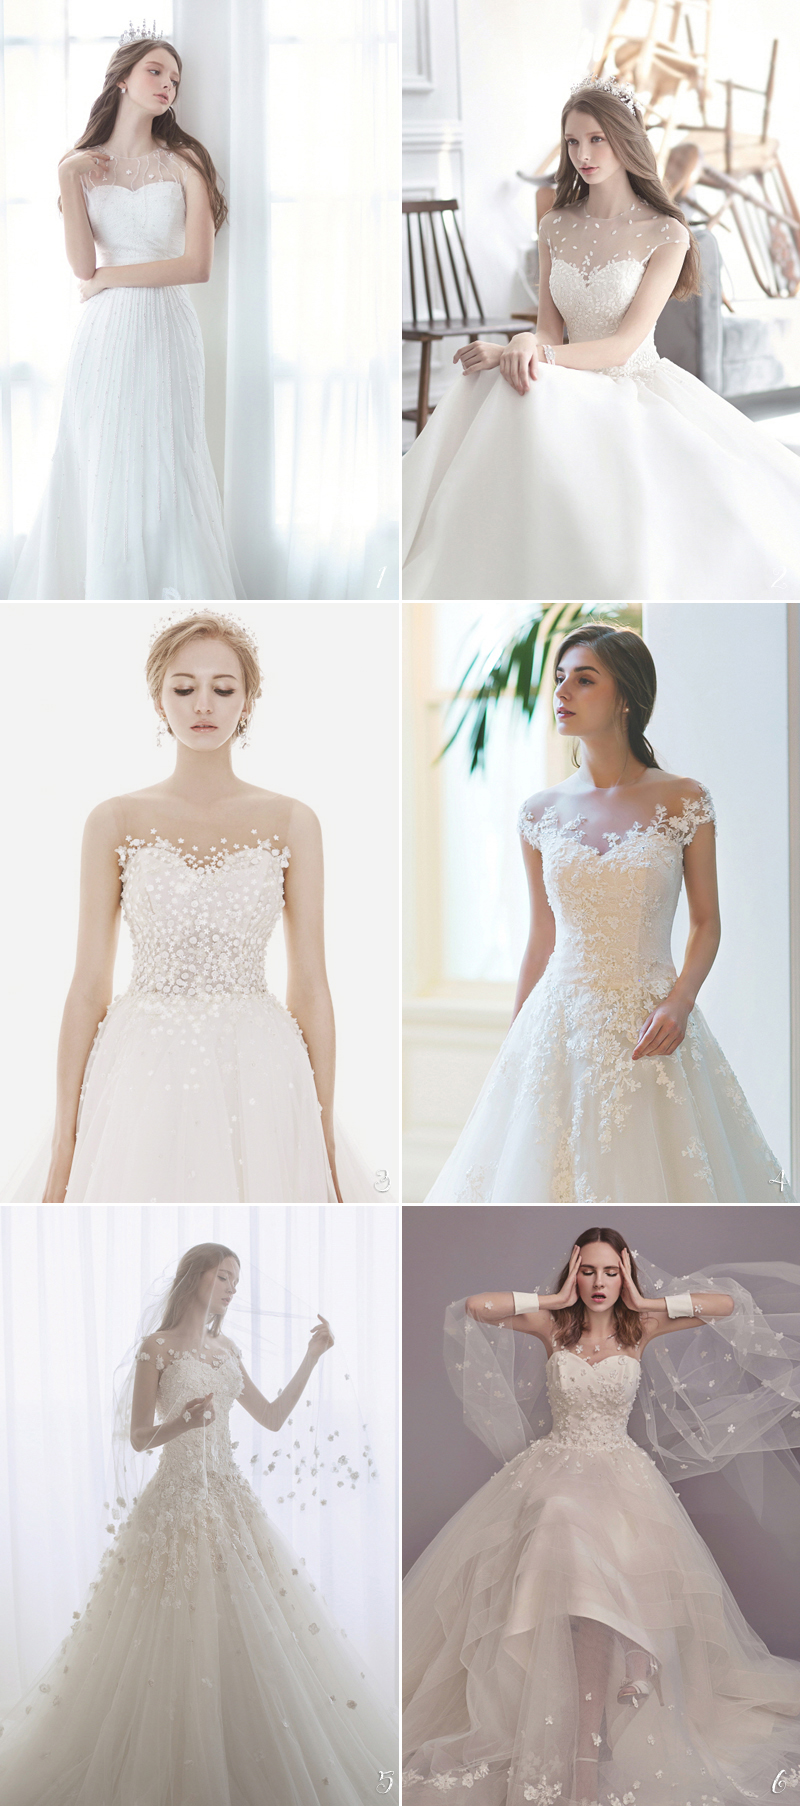 30 romantic wedding dresses with floral inspired neckline designs illusion neckline ombrellifo Choice Image